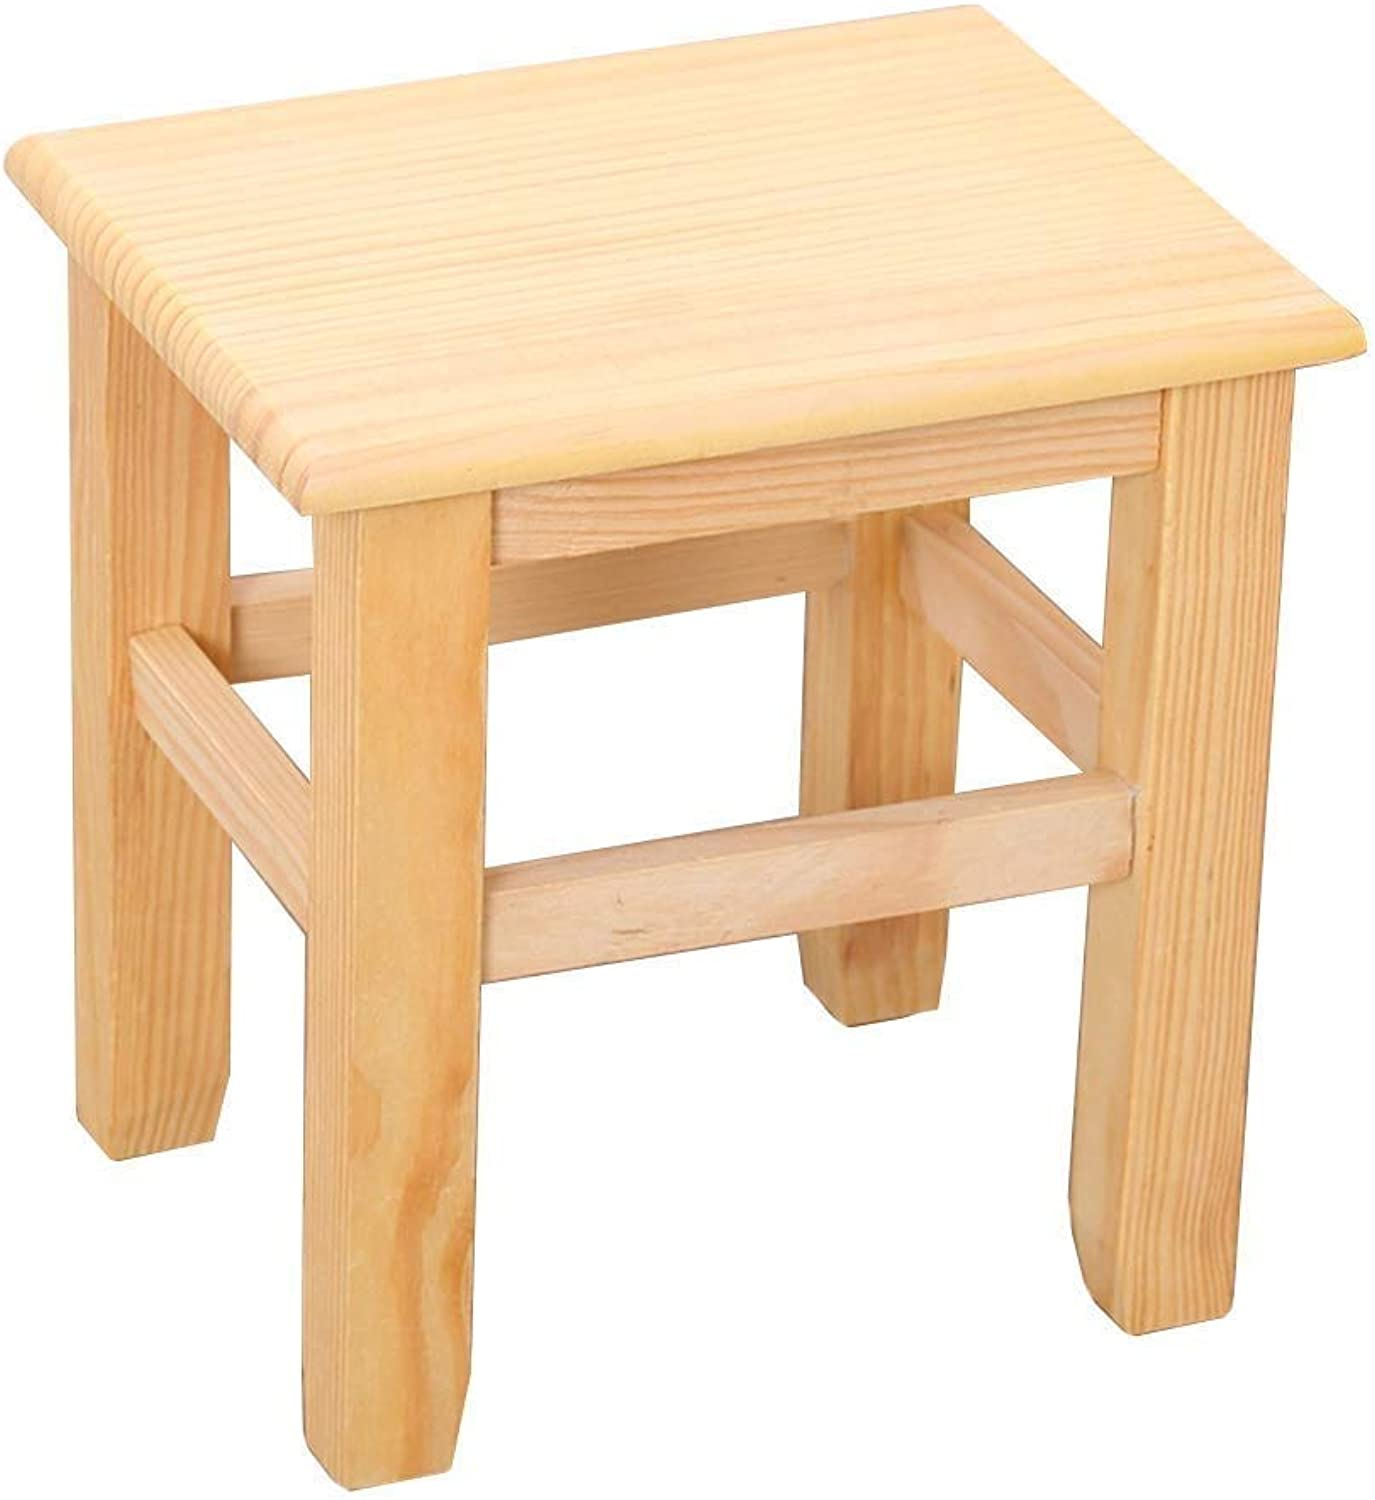 WSJTT Home Stool,Solid Wood Small Stool, Small Square Stool,Small Wooden Stool,shoes Stool,Coffee Table Stool,Small Bench for Home, Solid Wood Short Coffee Table